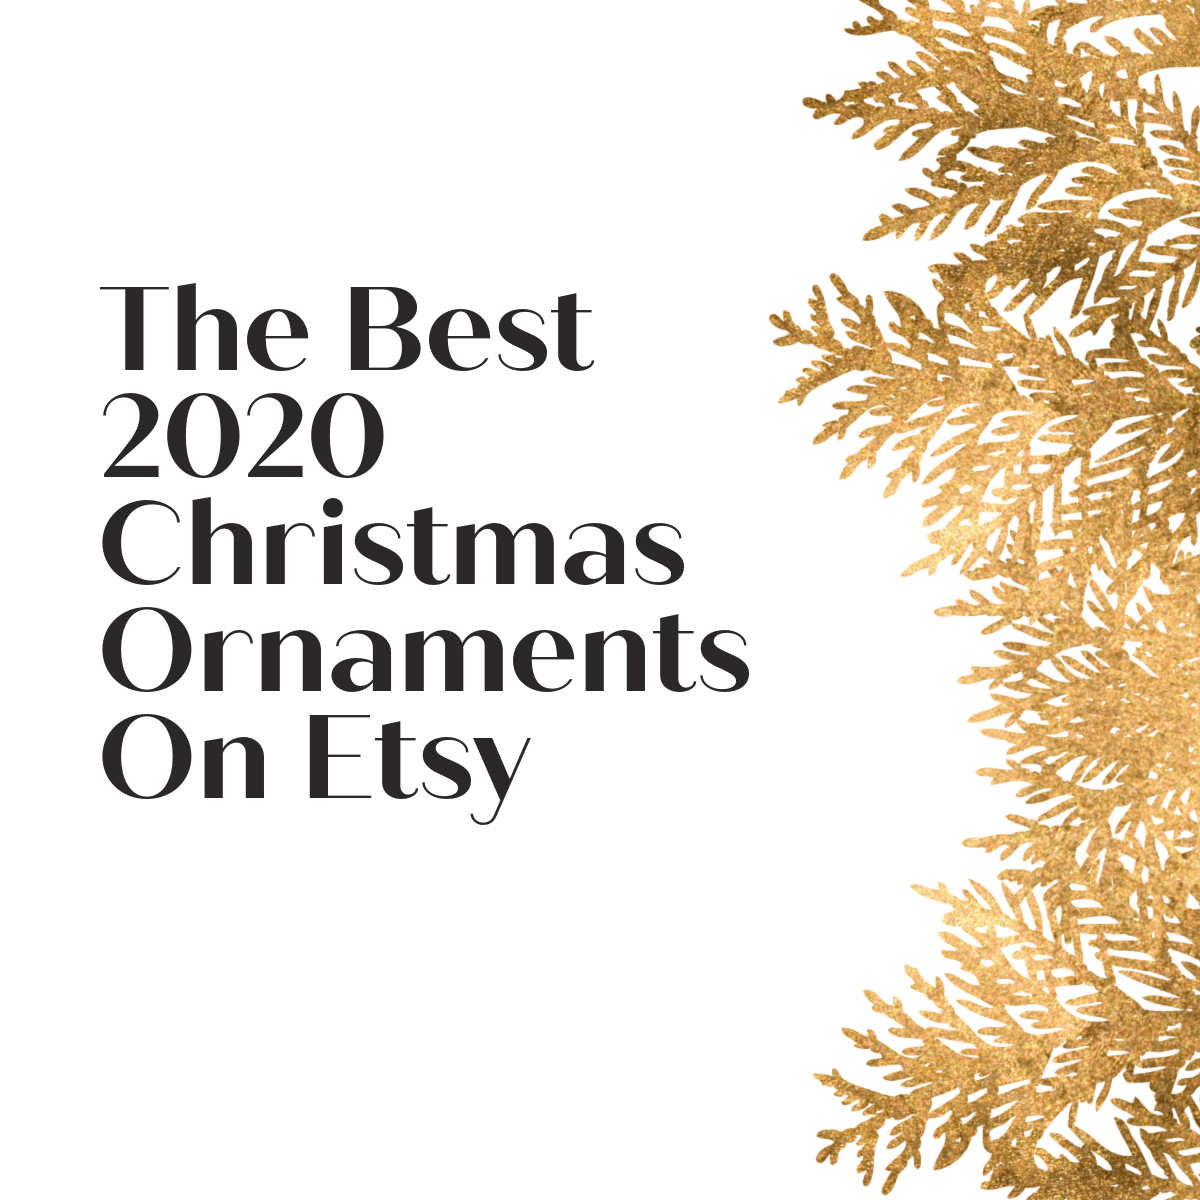 Text saying The Best 2020 Christmas Ornaments on Etsy